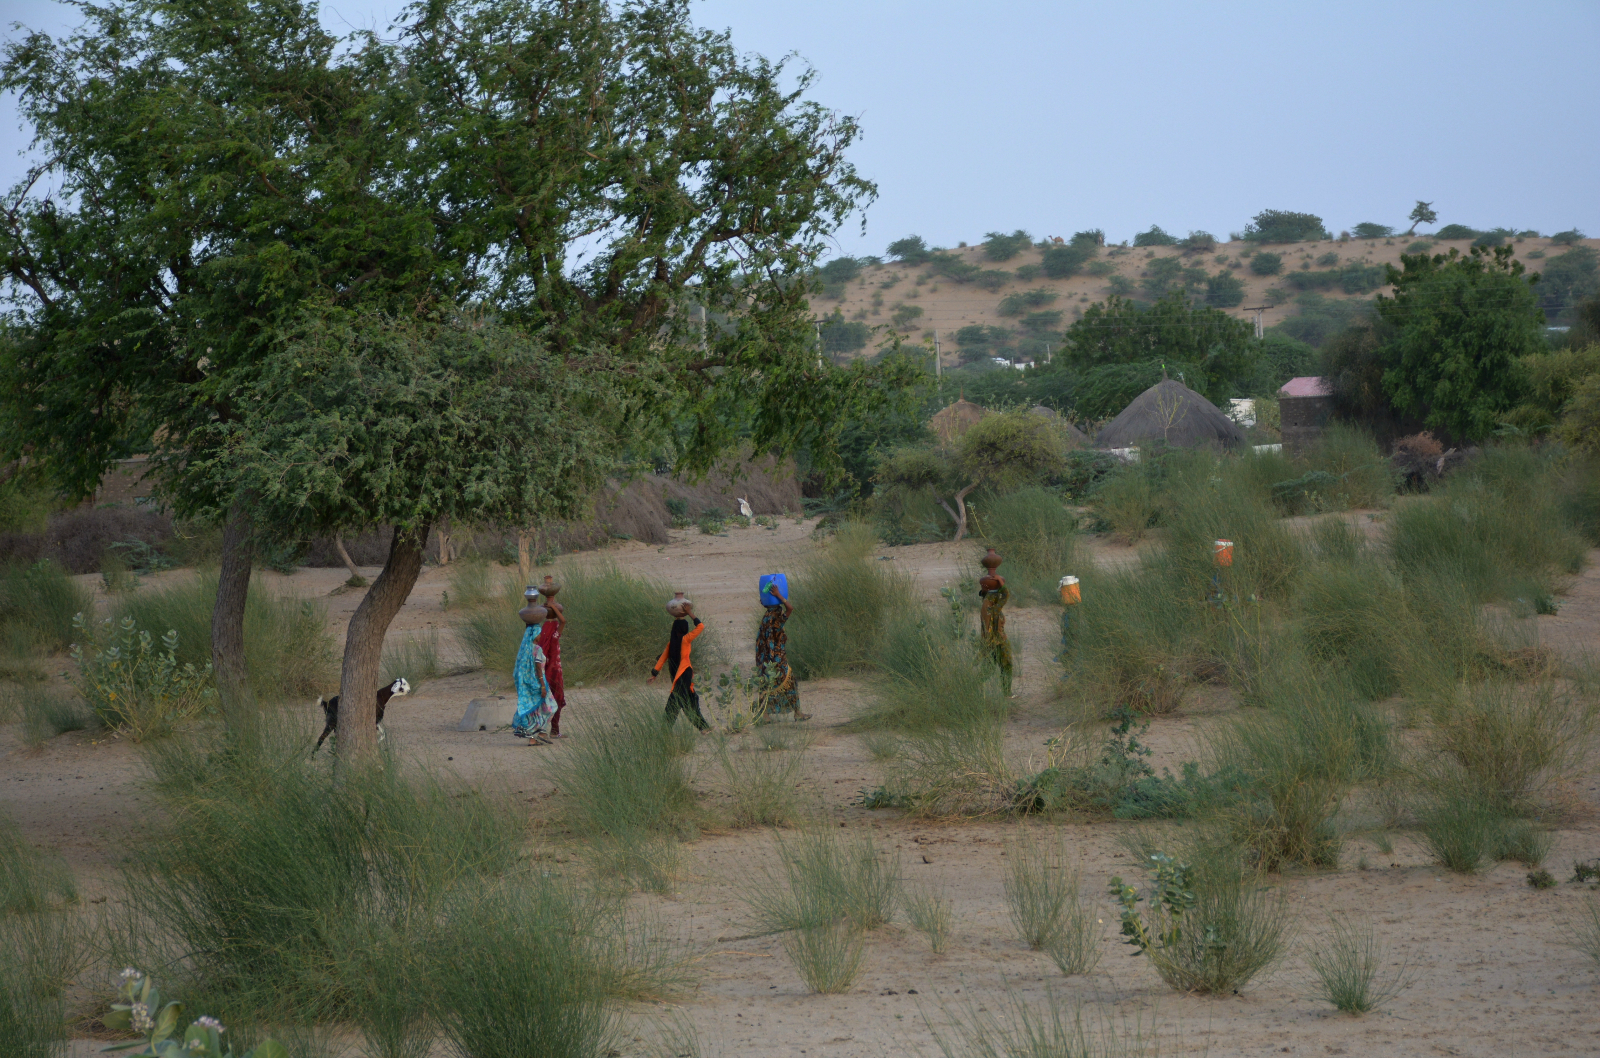 residents walking through Thar desert